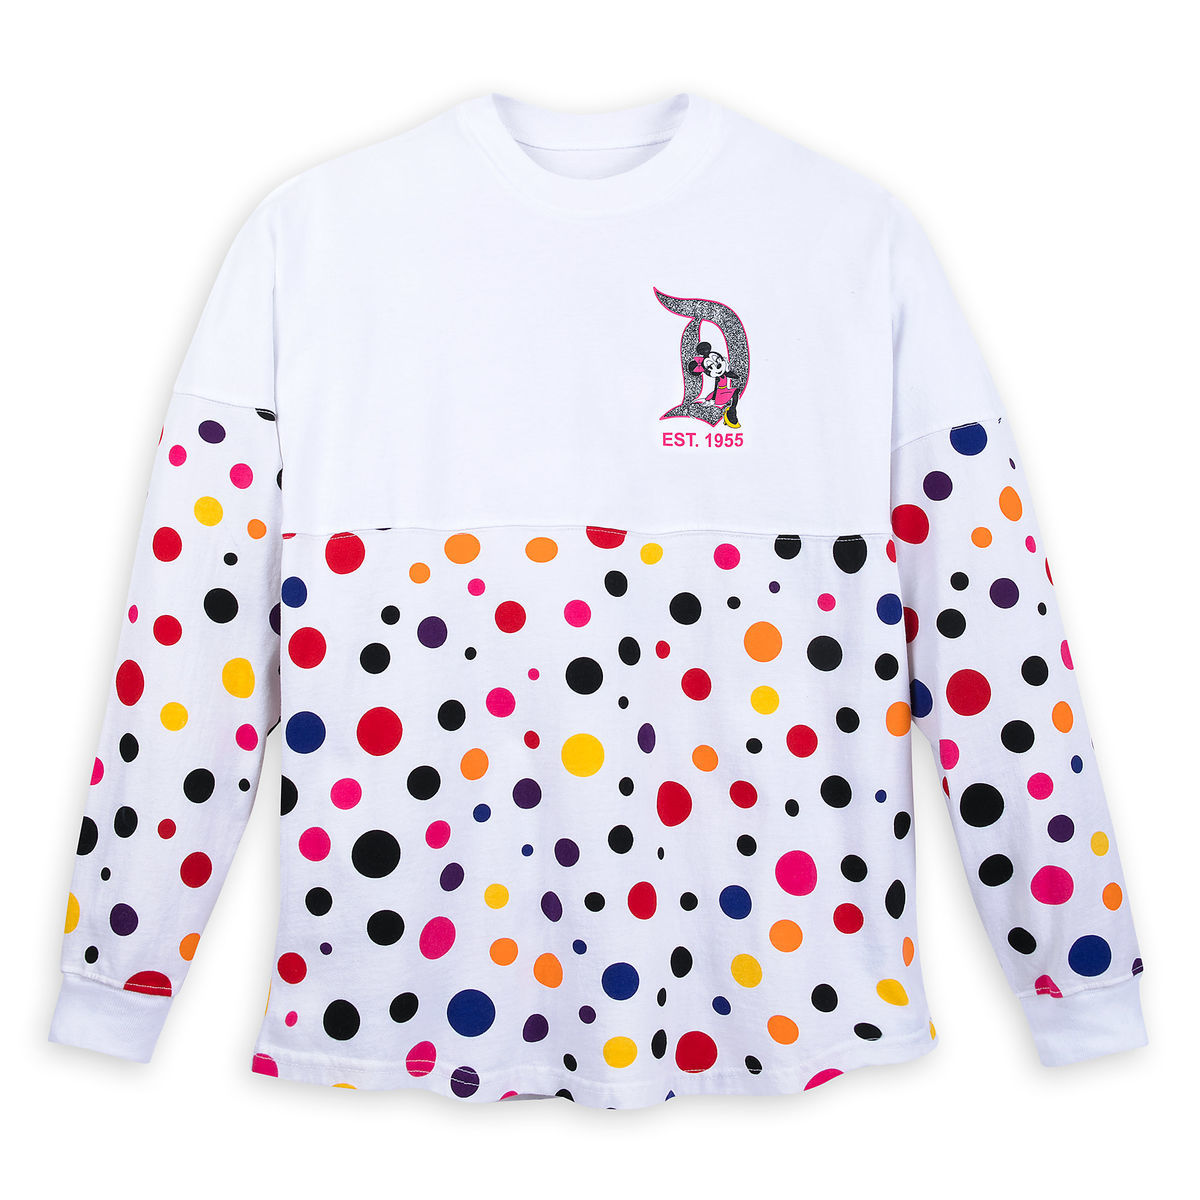 Product Image of Minnie Mouse Polka Dot Spirit Jersey for Adults -  Disneyland   1 c0720c2f3